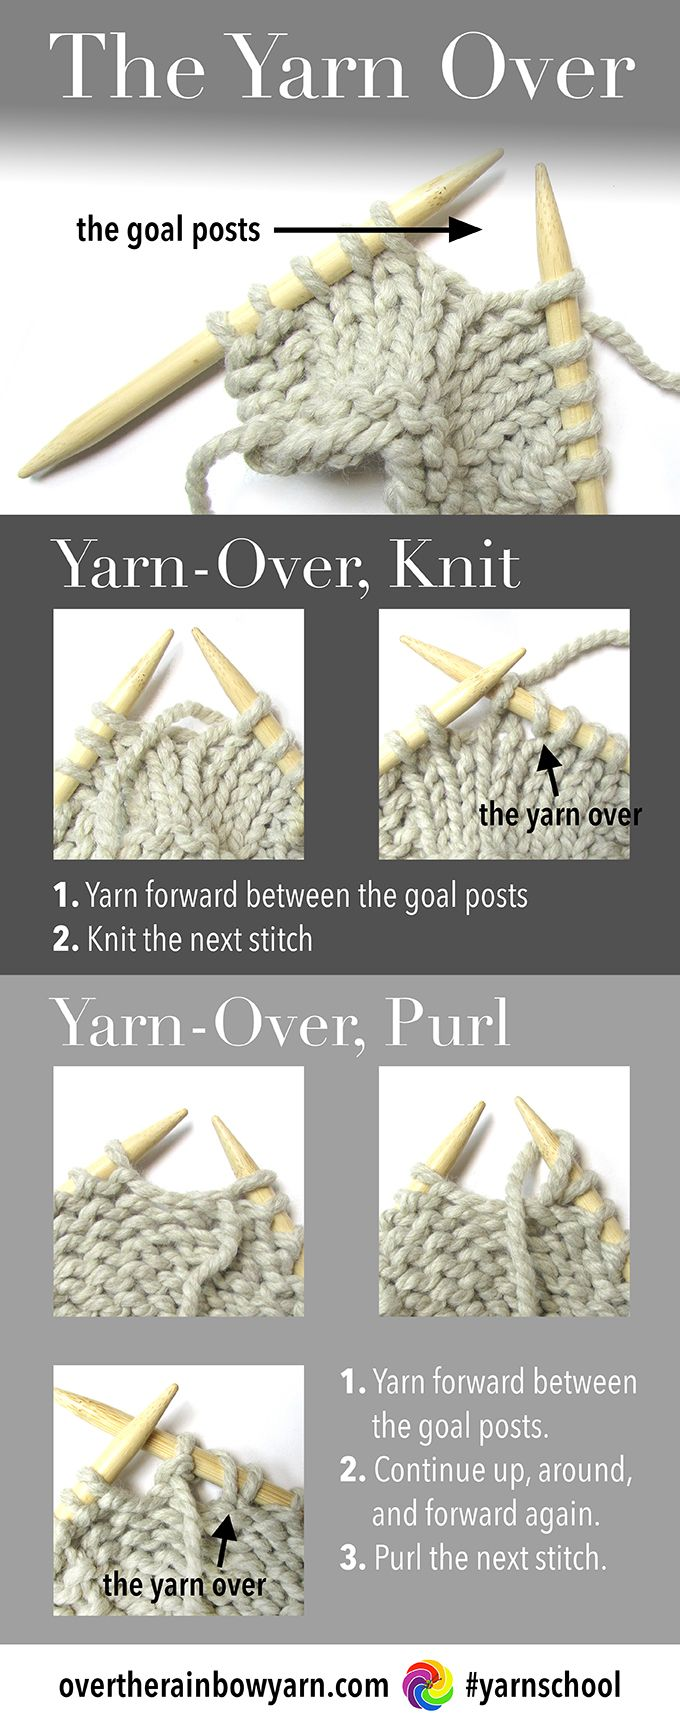 How to Work The Yarn Over, from Yarn School by Over the Rainbow Yarn #yarnschool